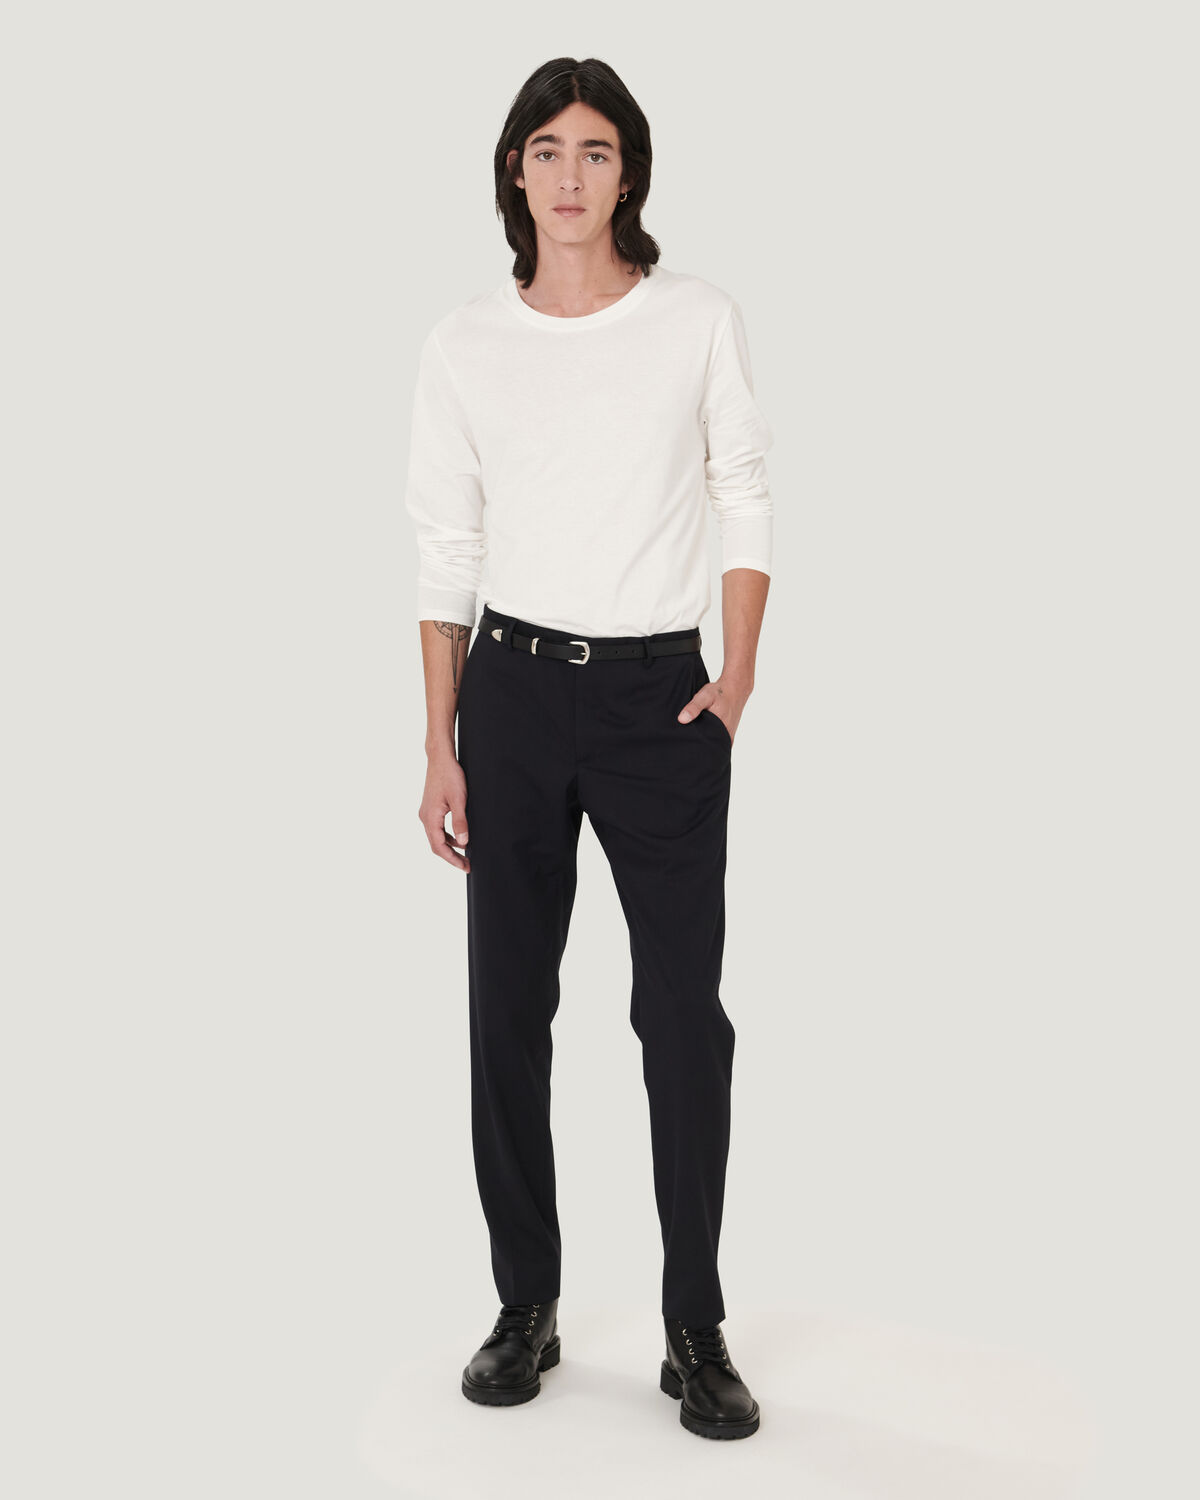 IRO - T-SHIRT EN COTON MANCHES LONGUES TERENCE OFF WHITE